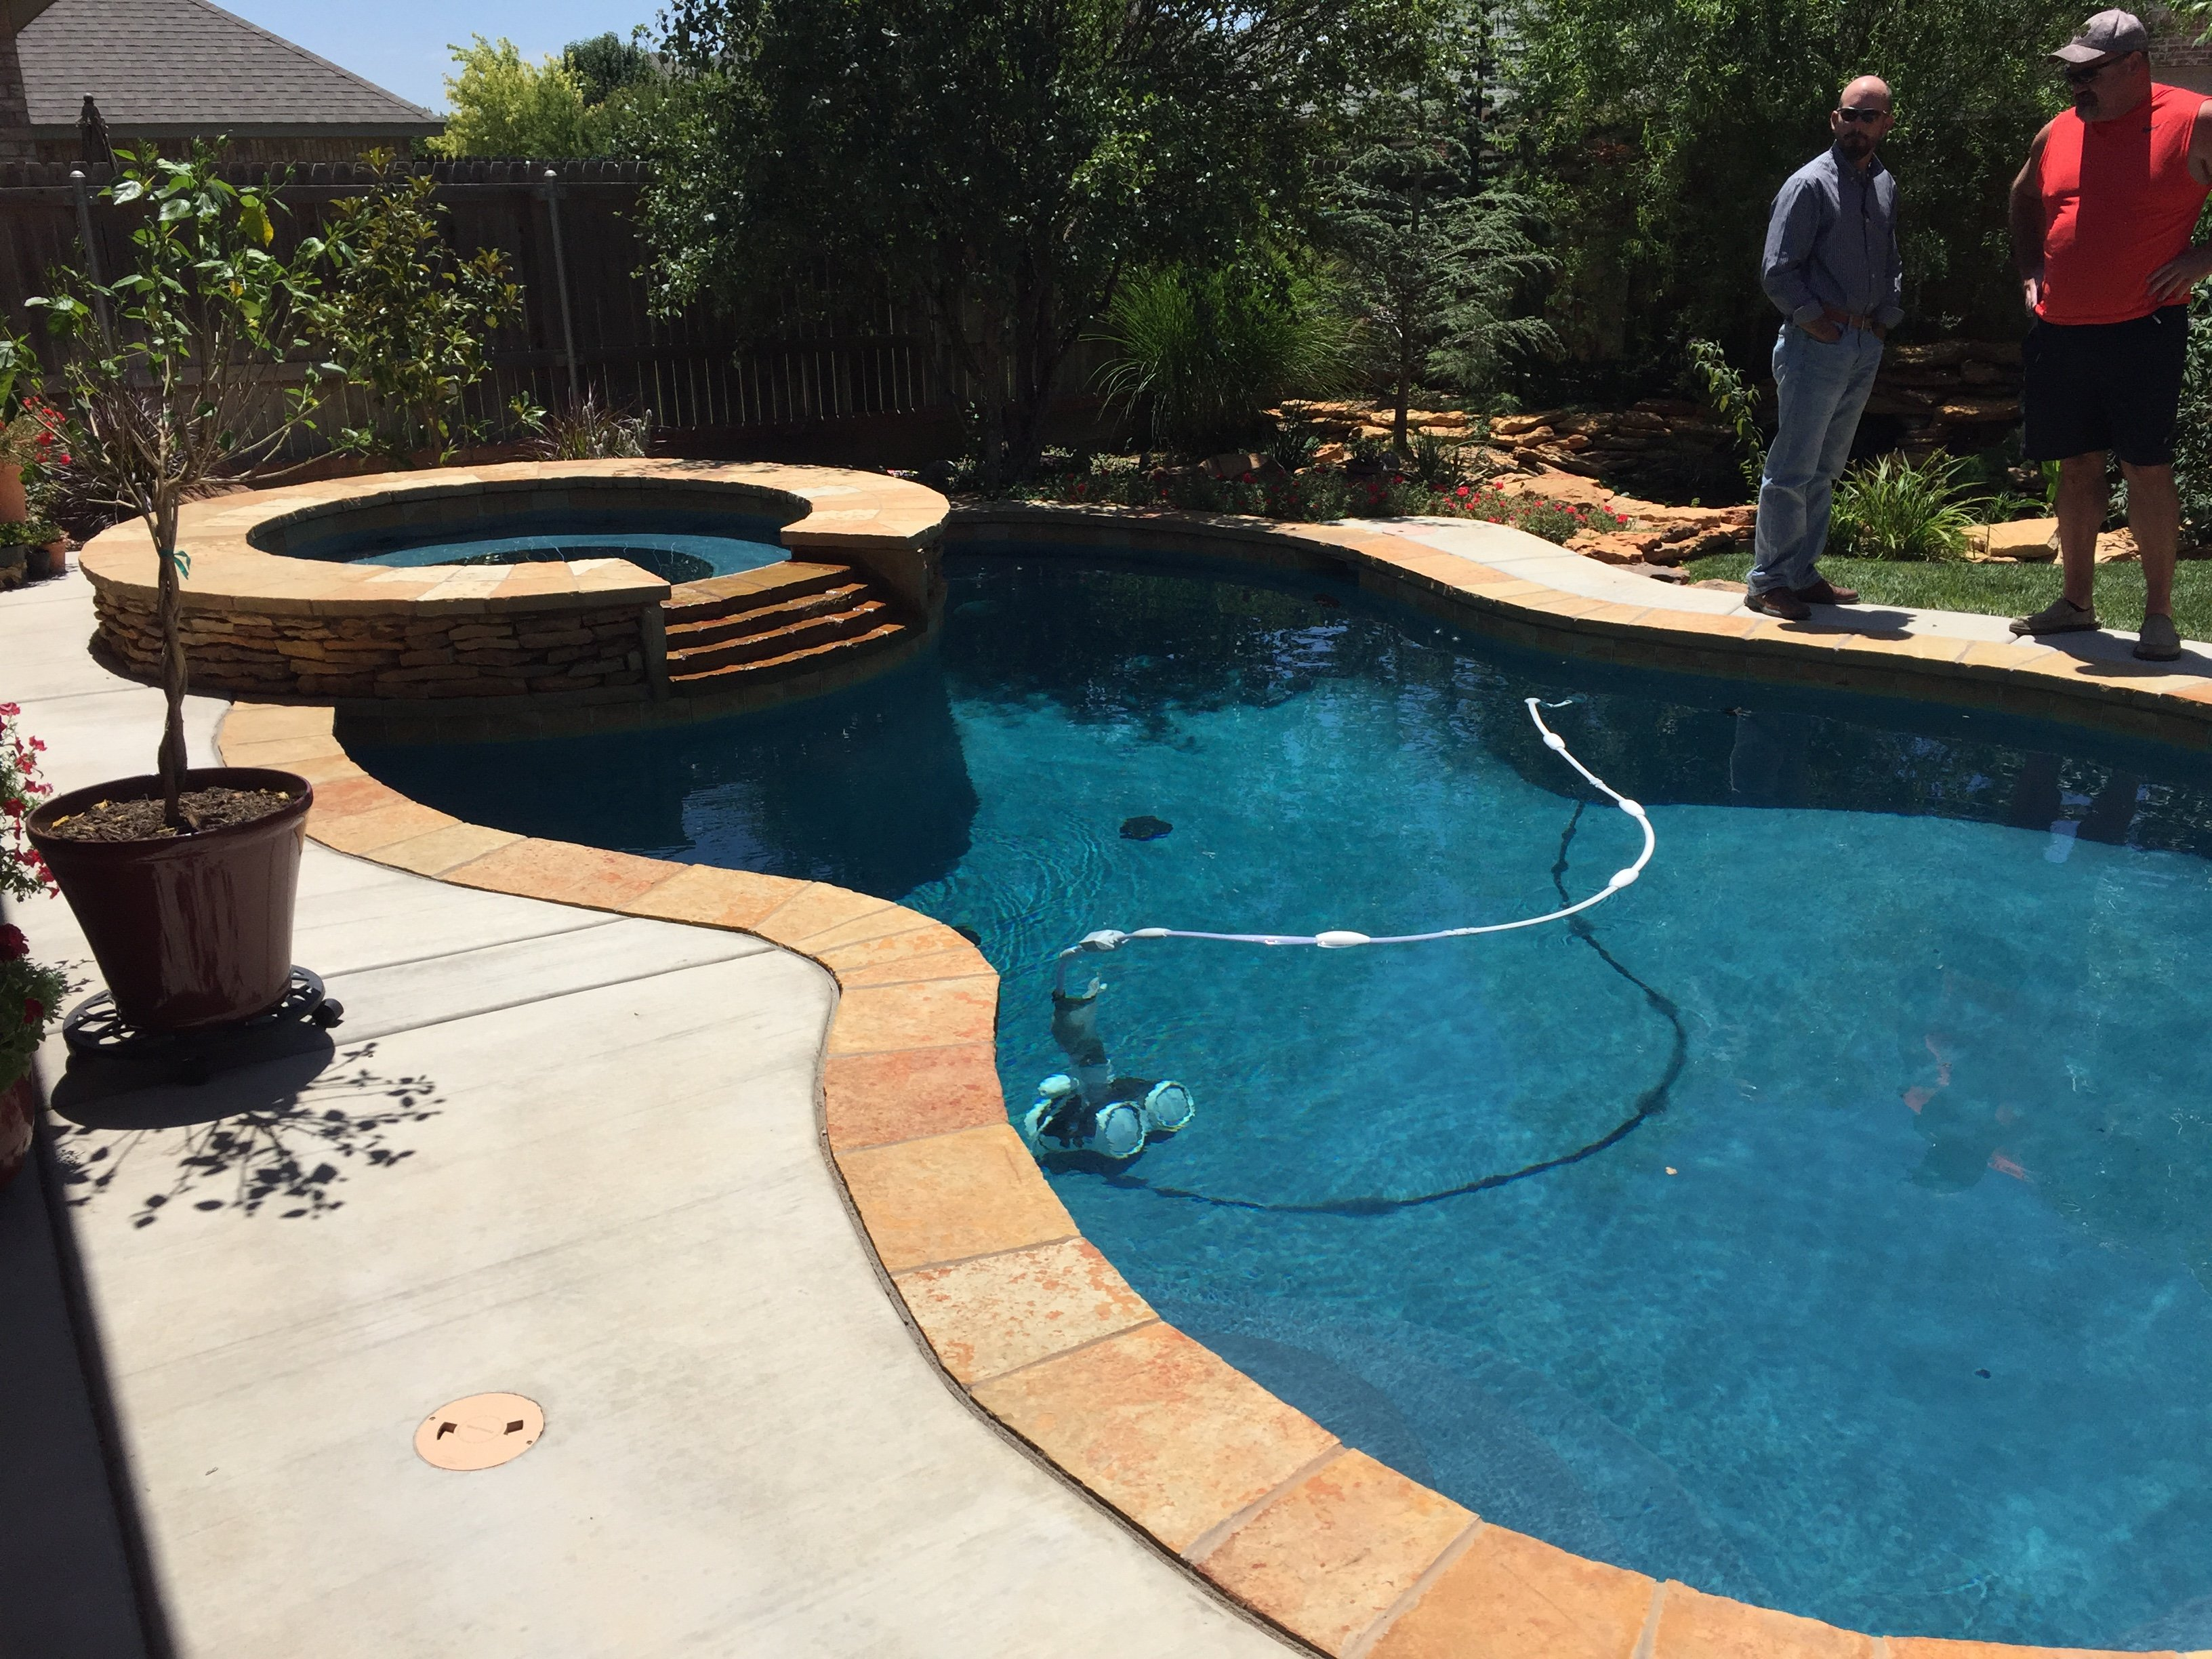 Out-Back Pool & Spa | Pool Contractor in Lubbock, TX - Out-Back Pool & Spa